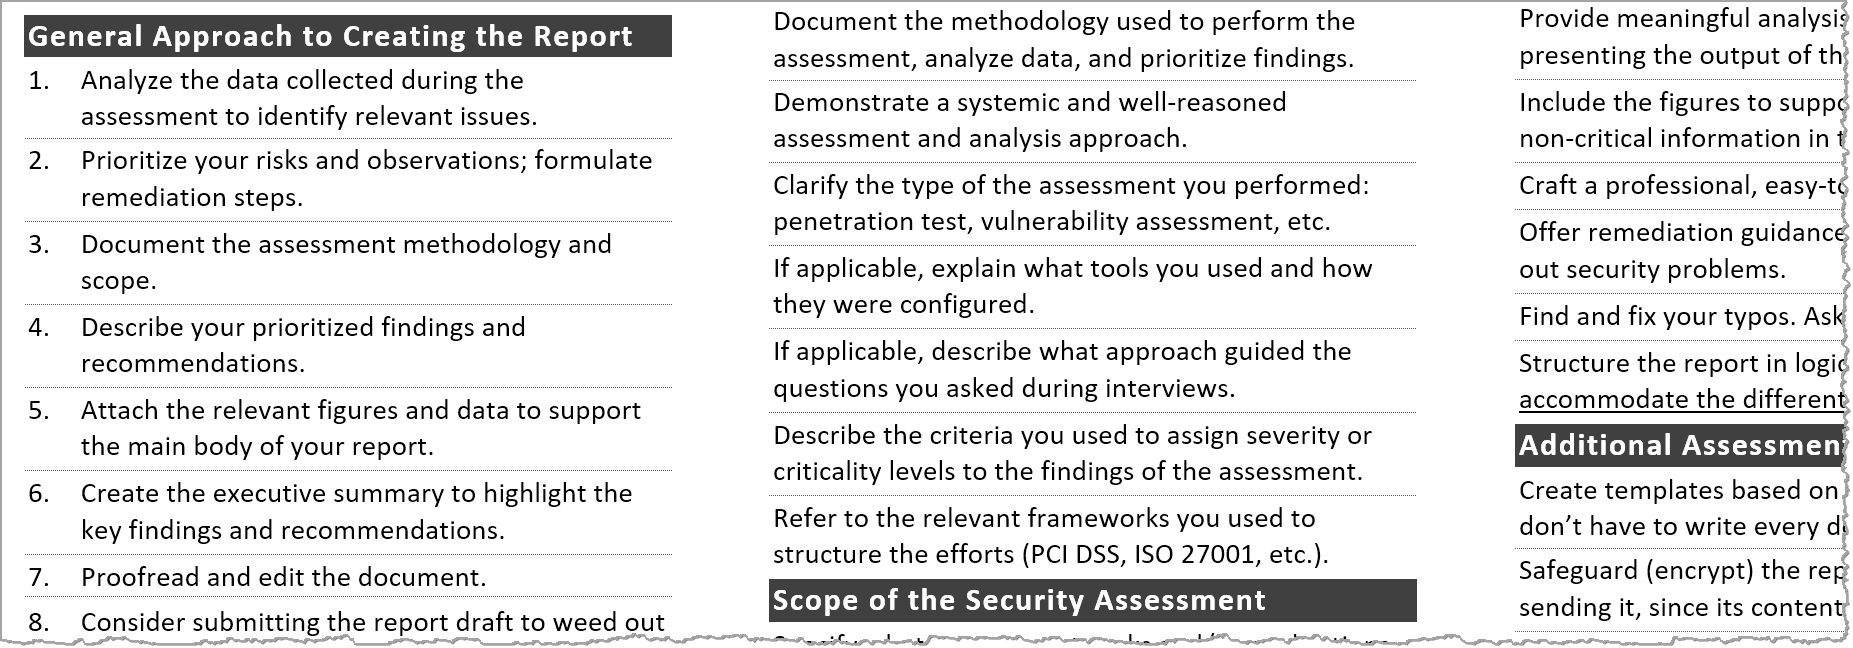 Tips For Creating A Strong Cybersecurity Assessment Report A vulnerability assessment report offers detailed information on existing vulnerabilities. strong cybersecurity assessment report